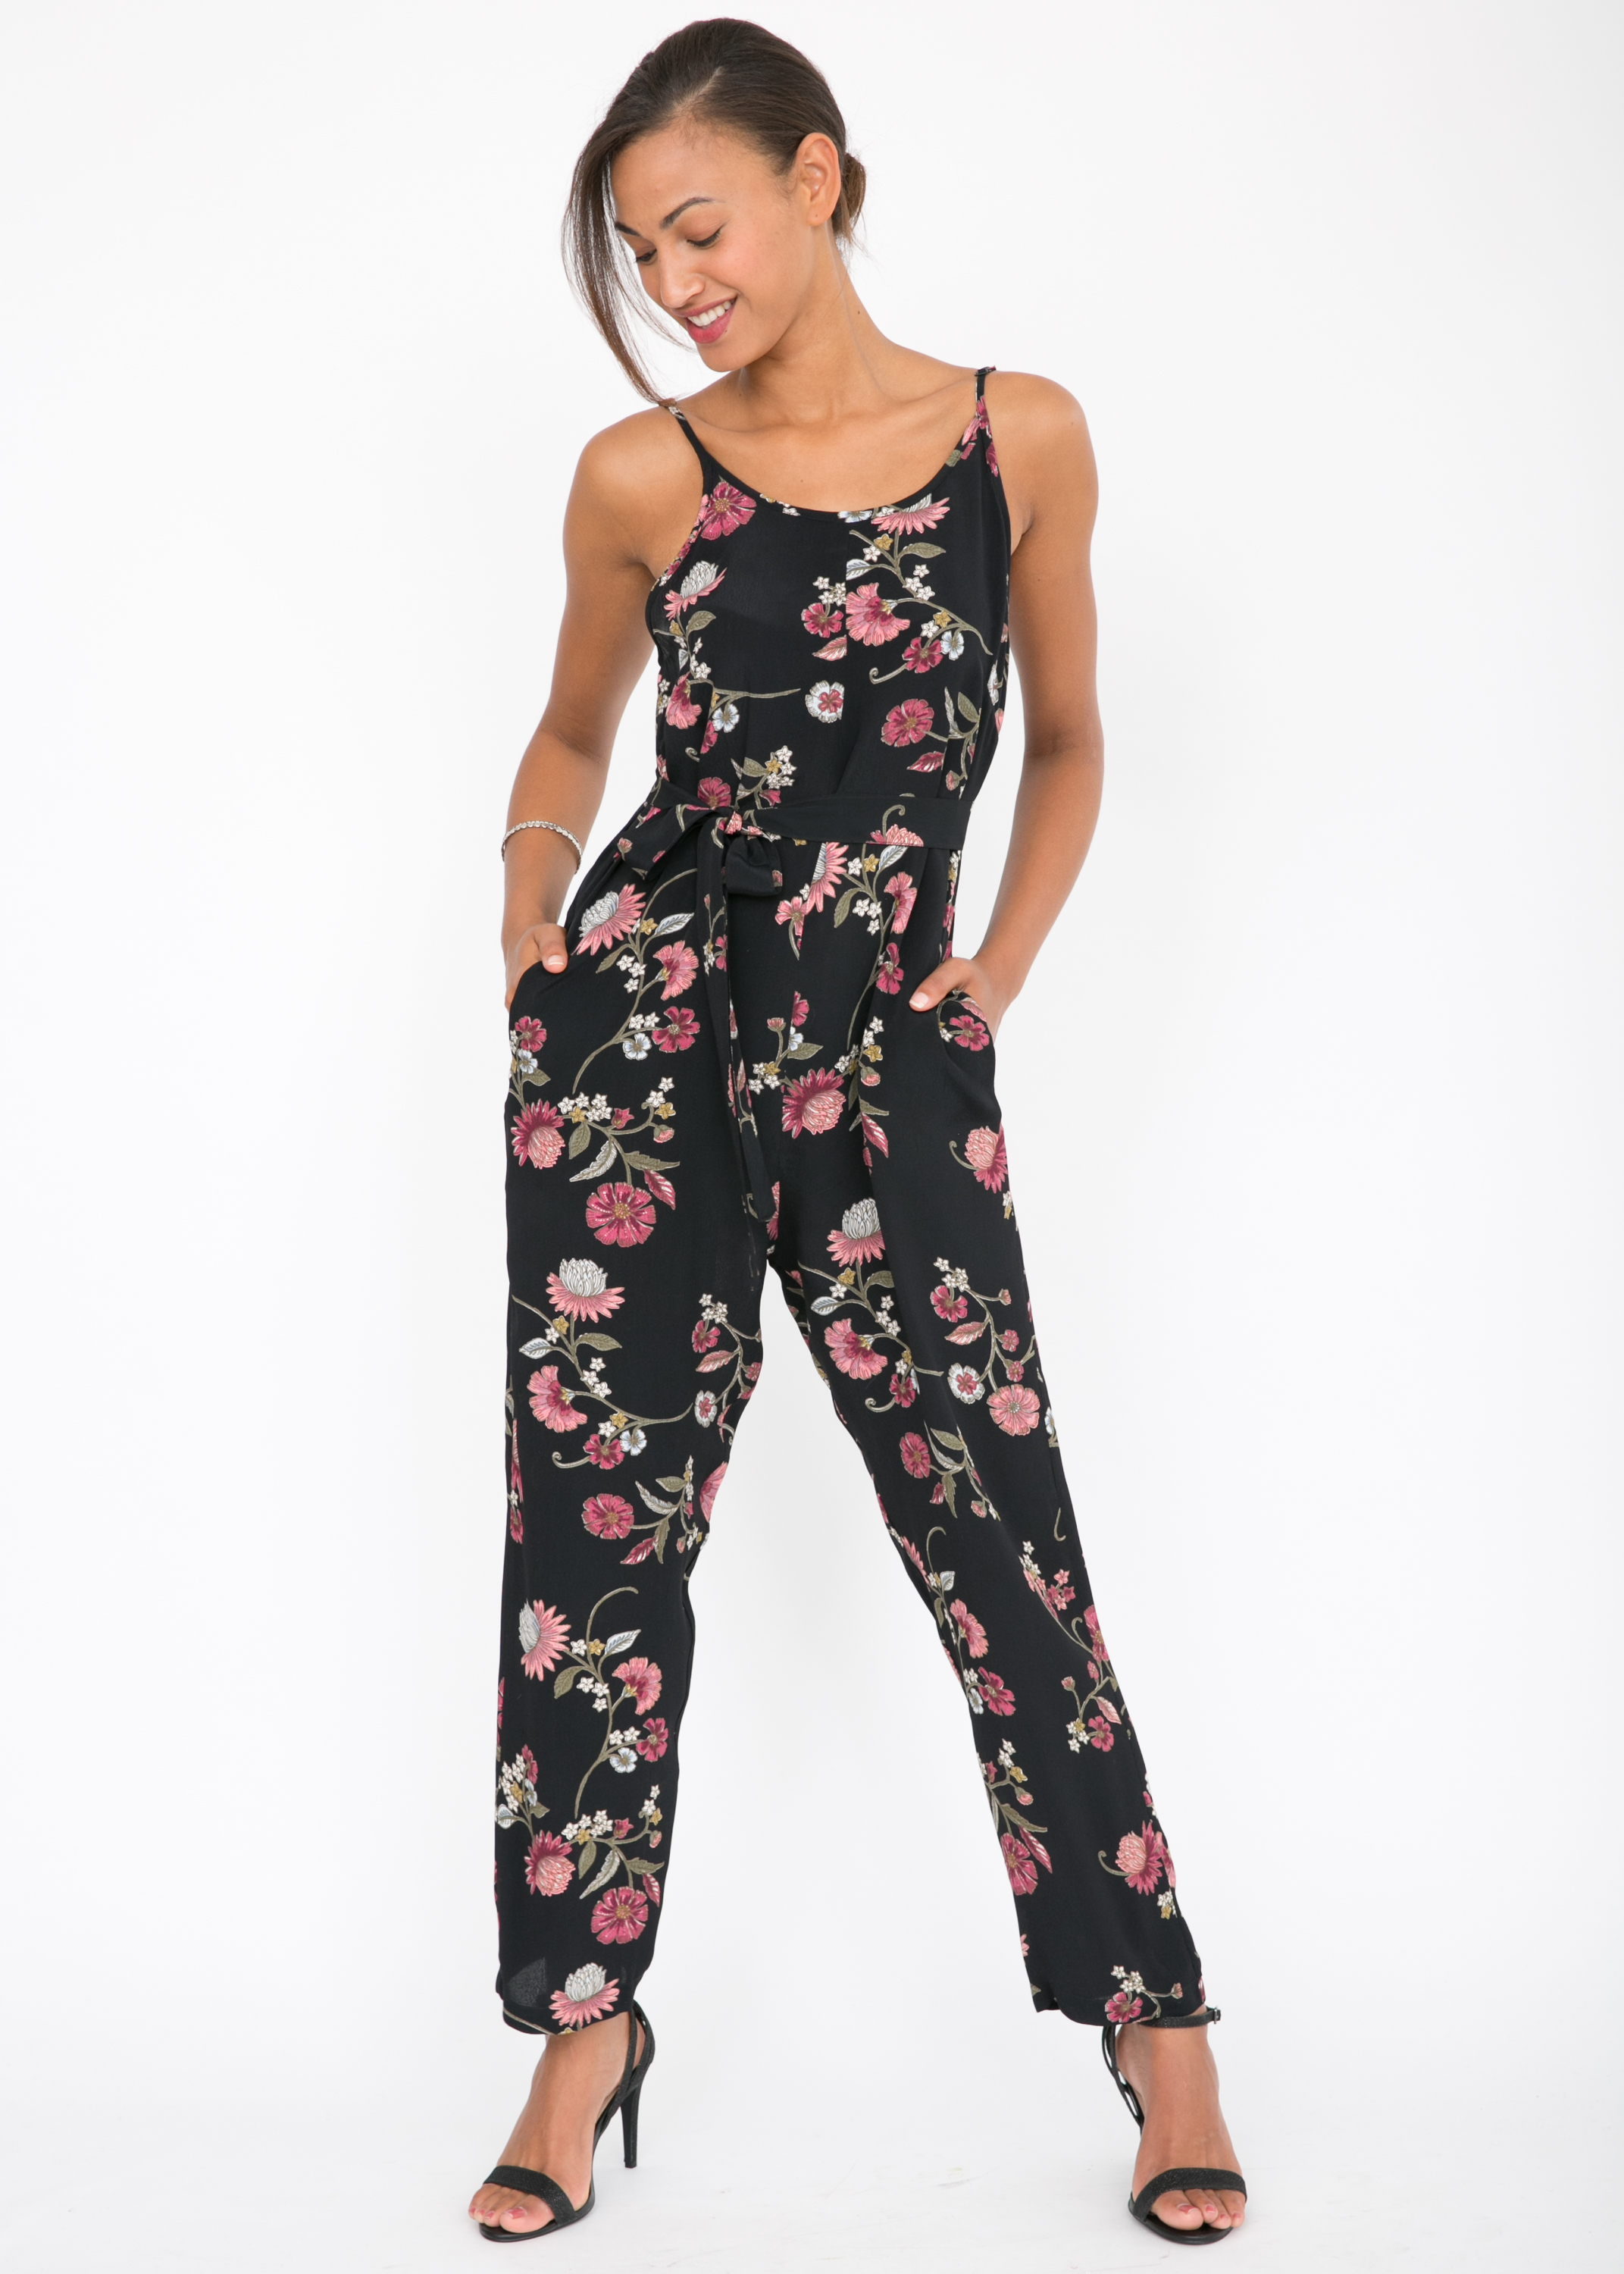 38fe1cae17b3 Relaxed Strappy Romper Floral Print Jumpsuit – likemary